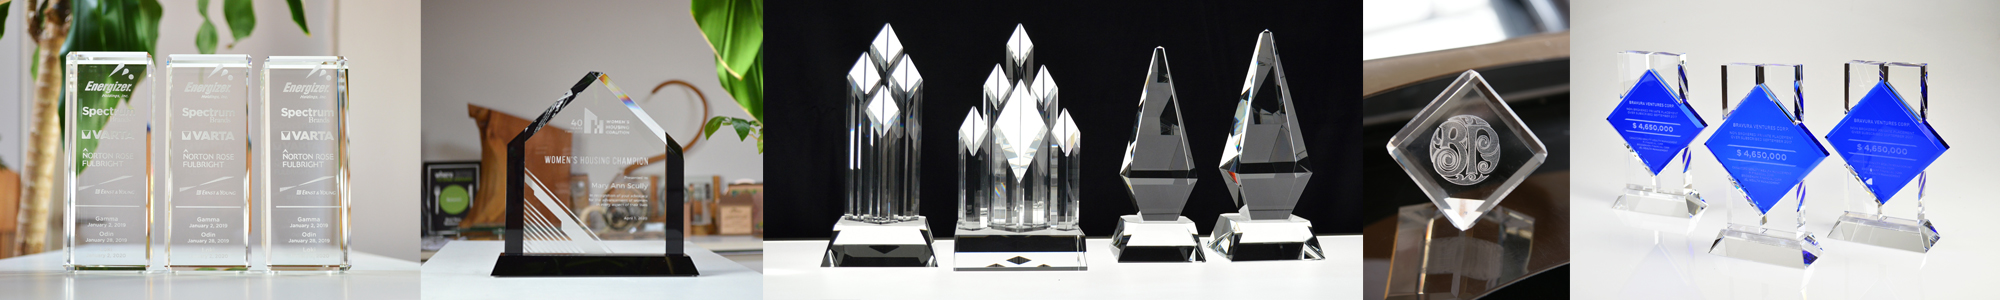 banner-crystal-glass-trophies-corporate-unique-recognition